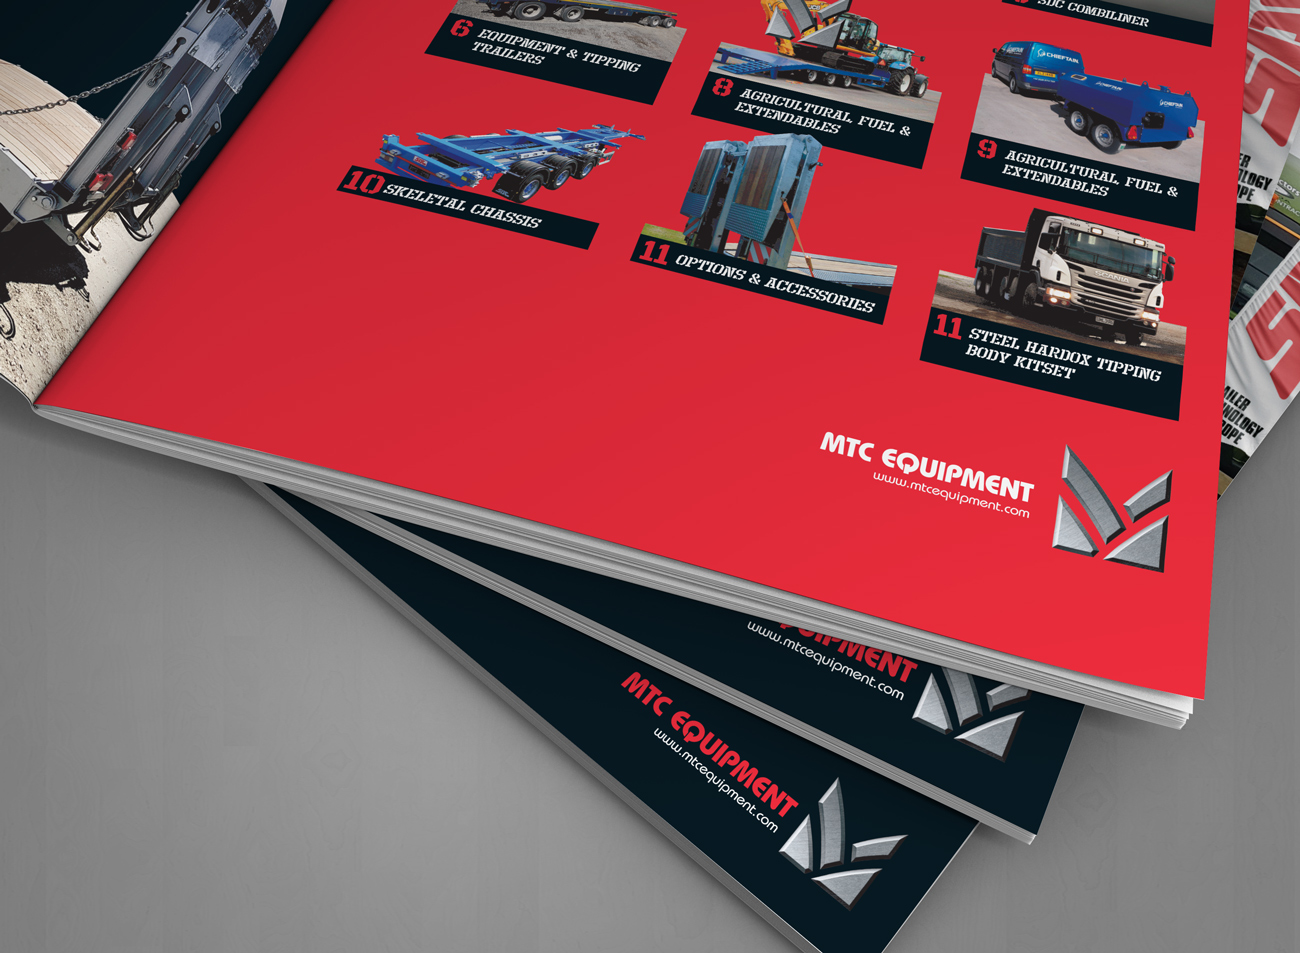 Detail of MTC Equipment 2019 Catalogue inside front cover and contents pages spread